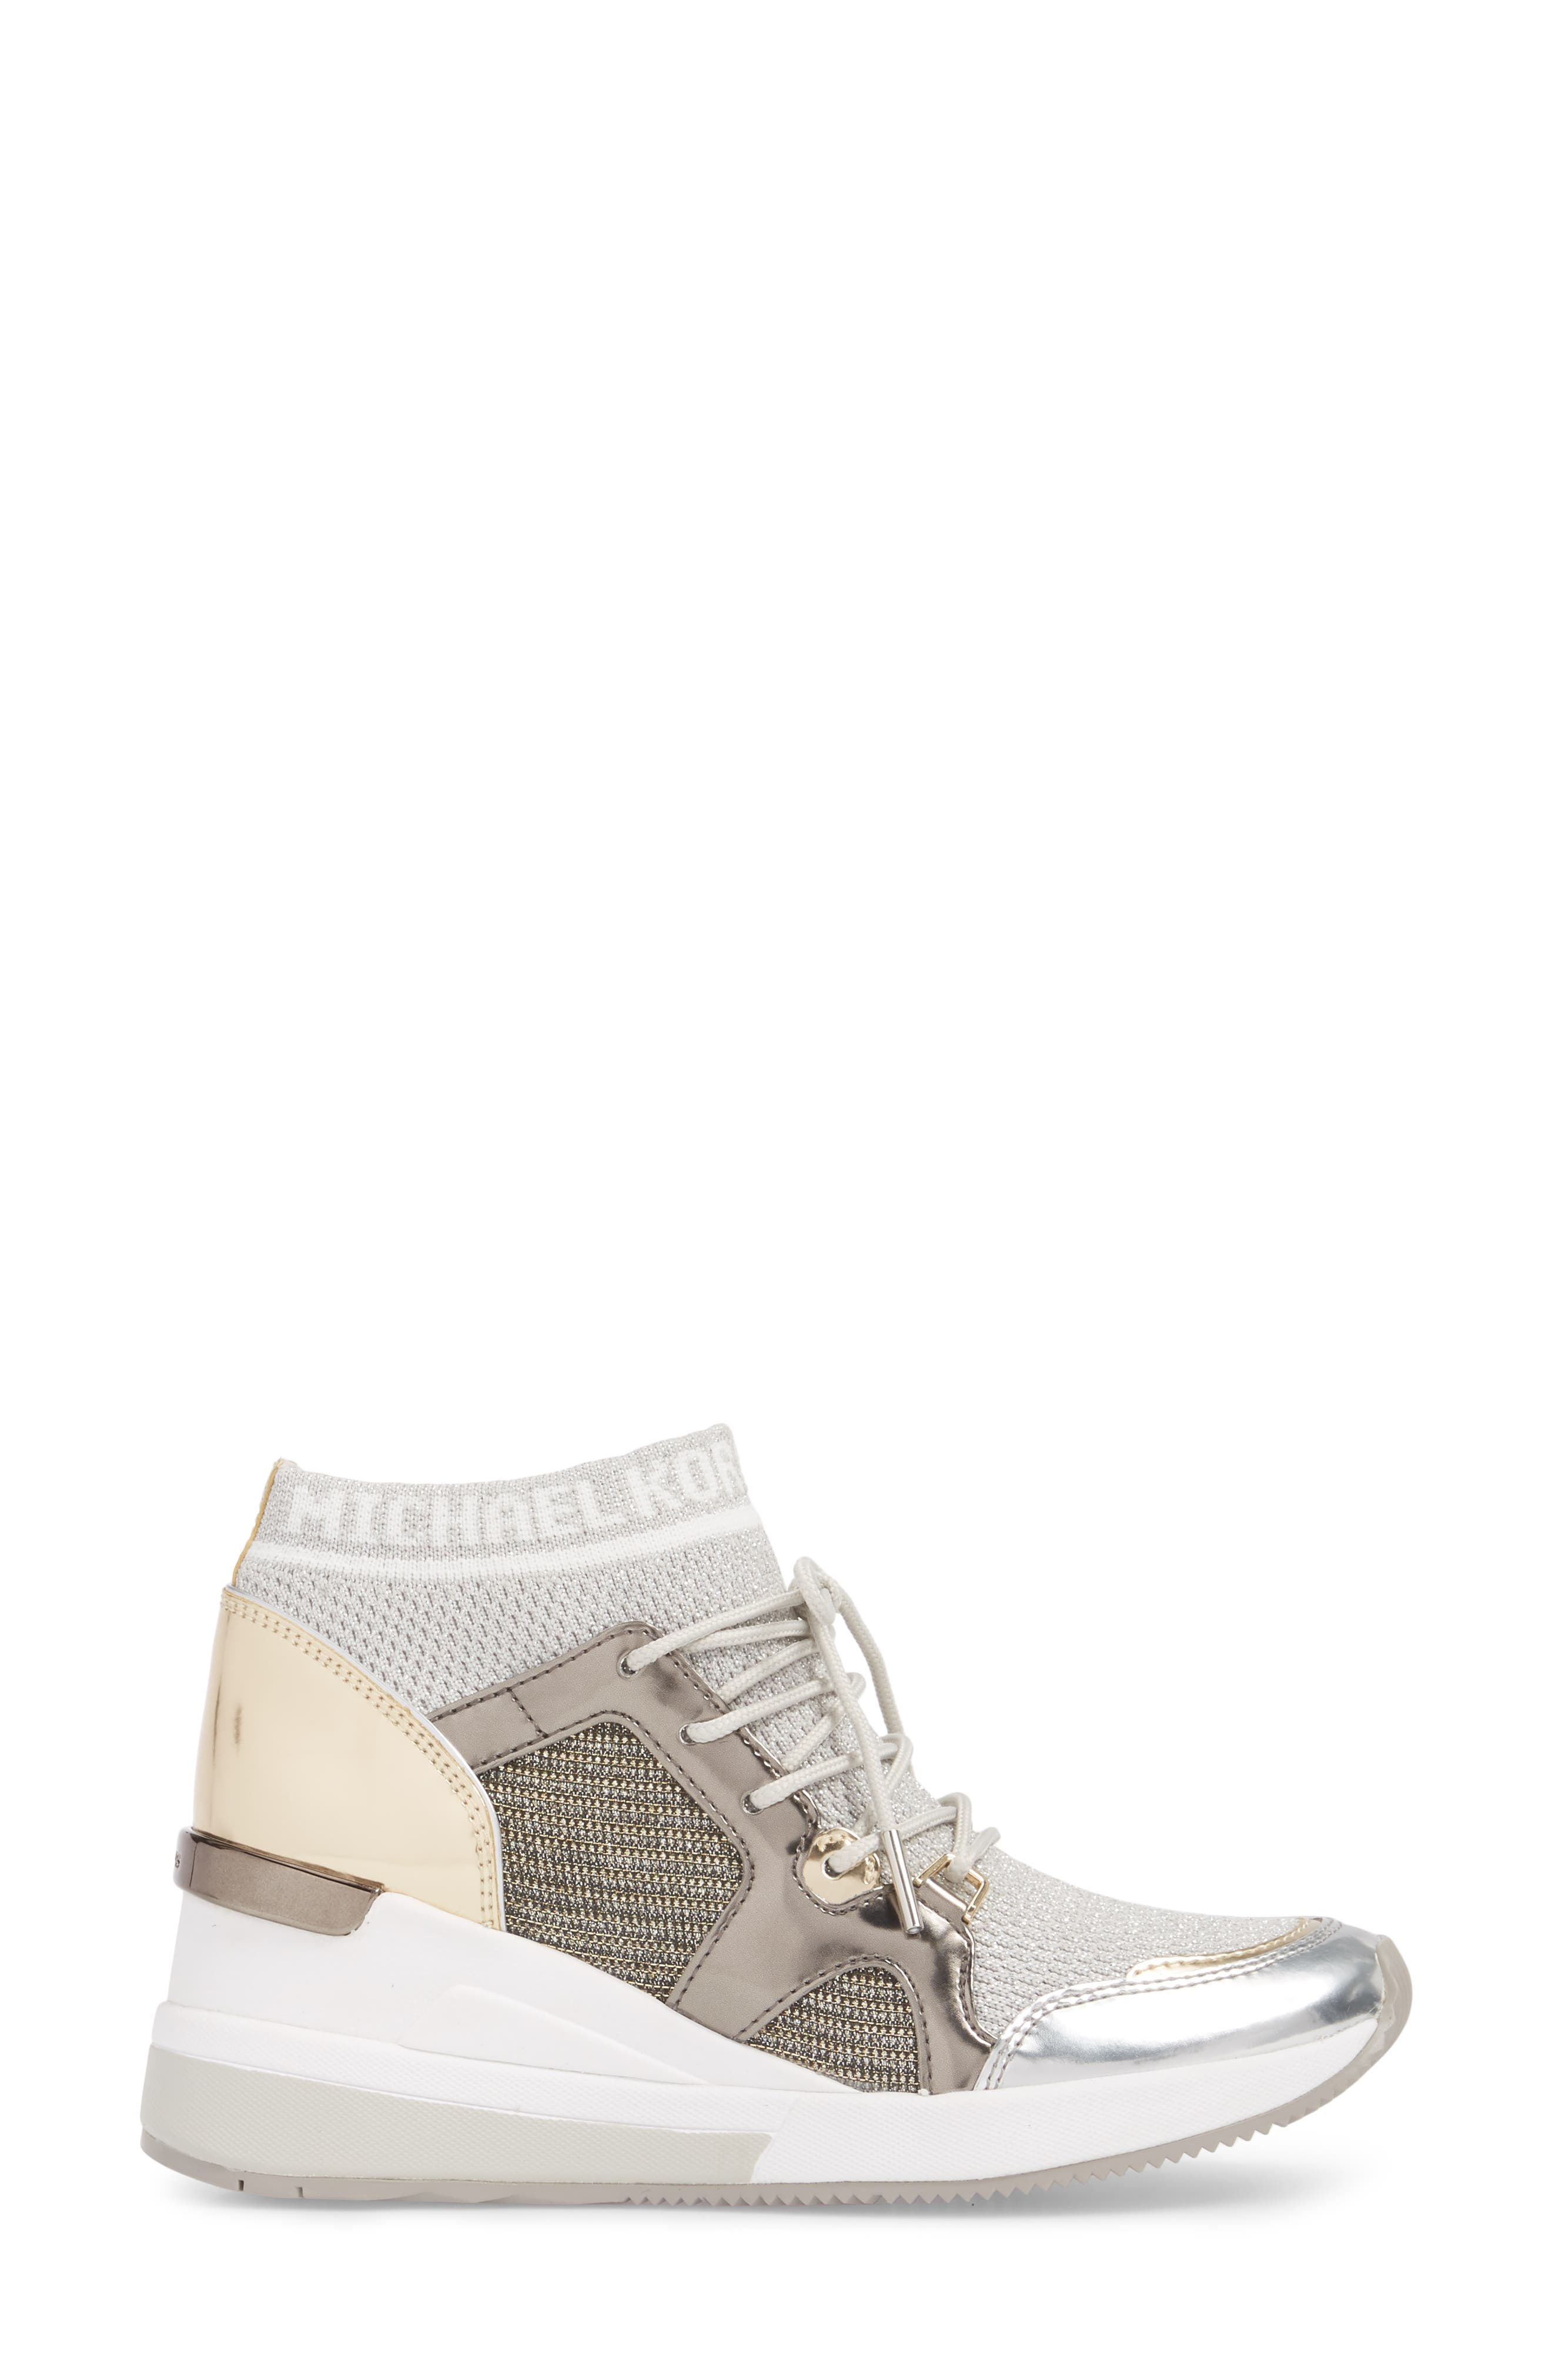 Hilda Wedge Sneaker,                             Alternate thumbnail 3, color,                             Silver Knit Fabric